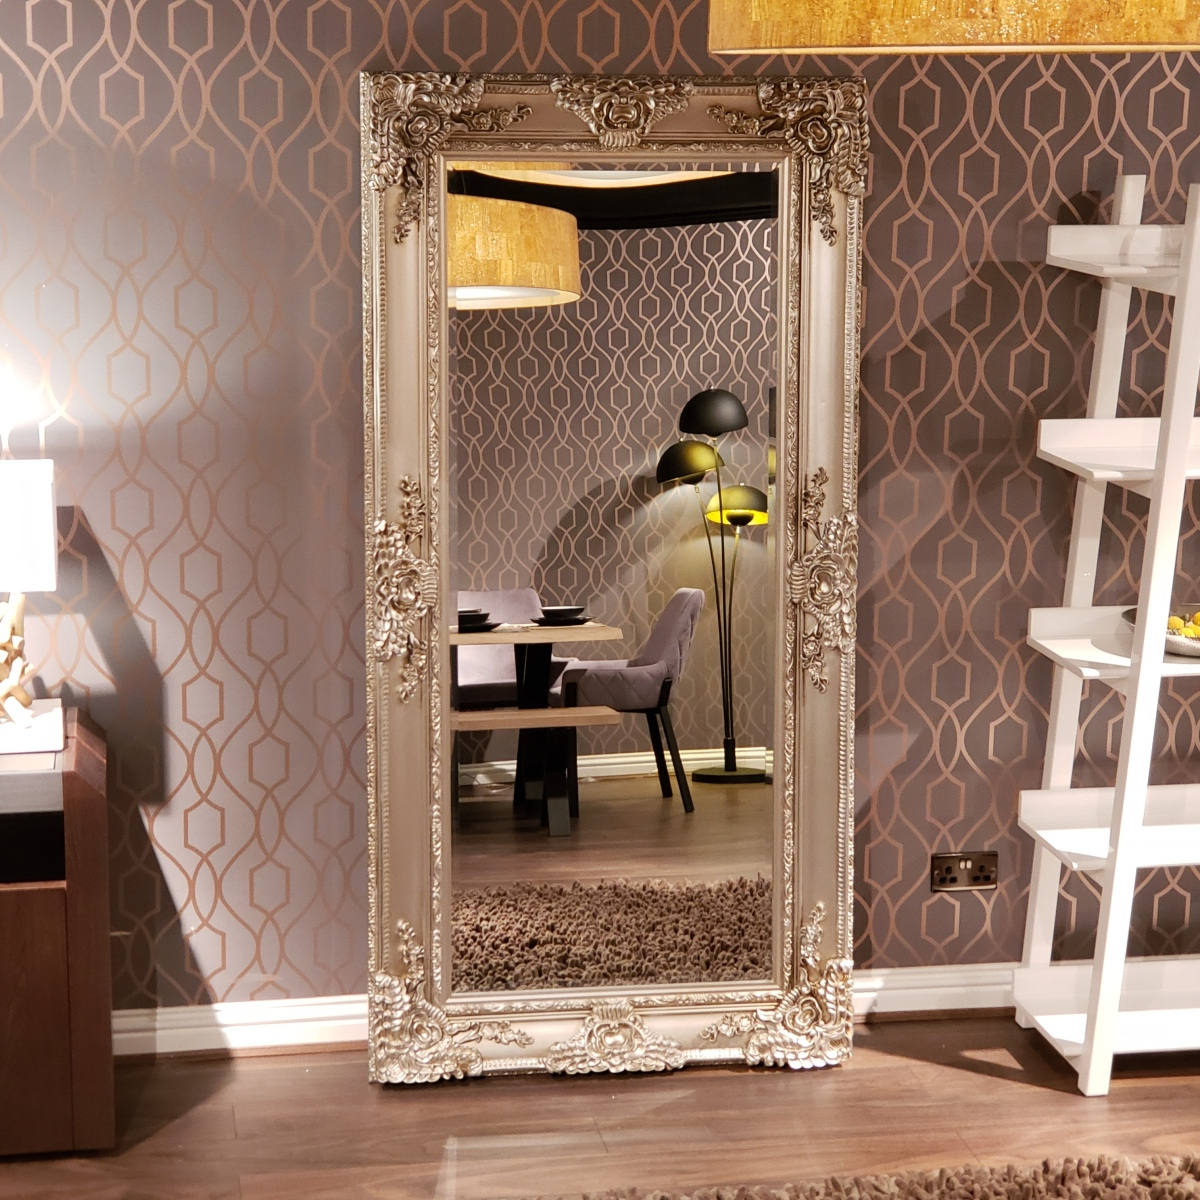 Details About Beautiful Ornate Silver French Style Bevelled Glass Wall Mirror 1 X 2M For Popular Beautiful Wall Mirrors (View 7 of 20)